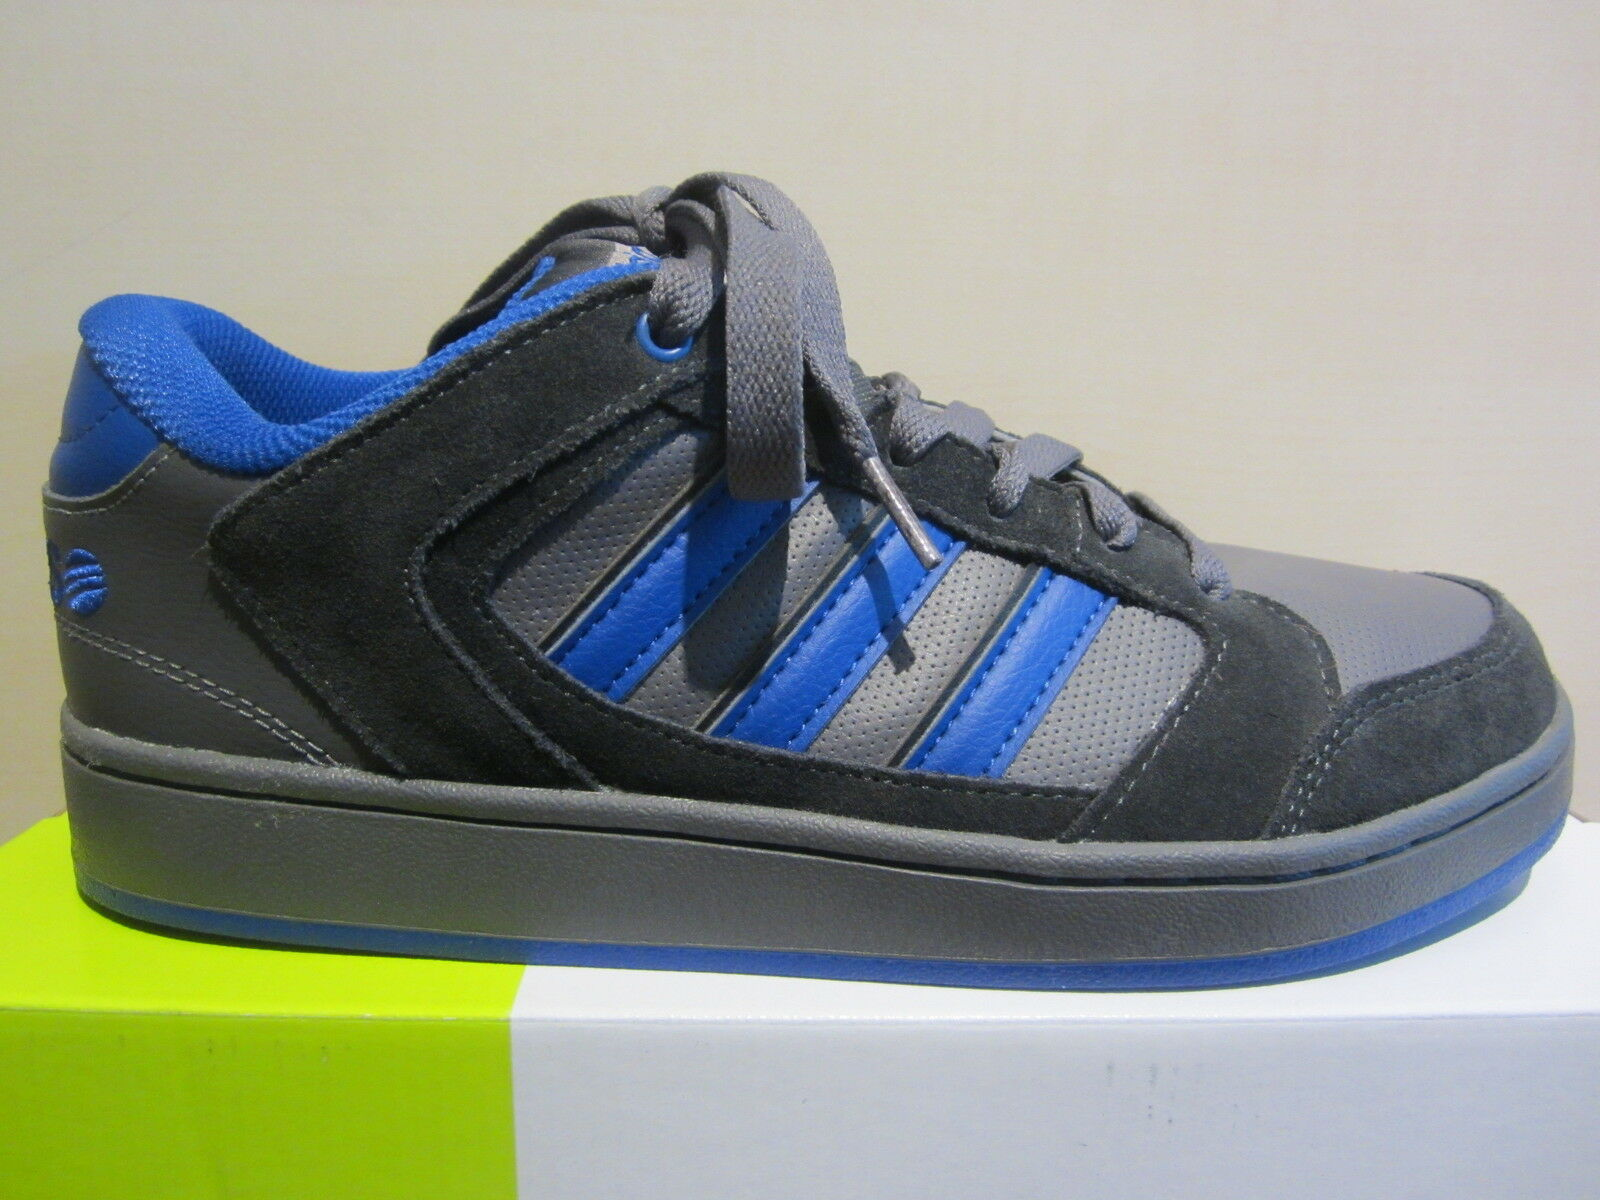 Adidas Lace up Chualar grigio  blu Leather   Synthetic New  in vendita scontato del 70%